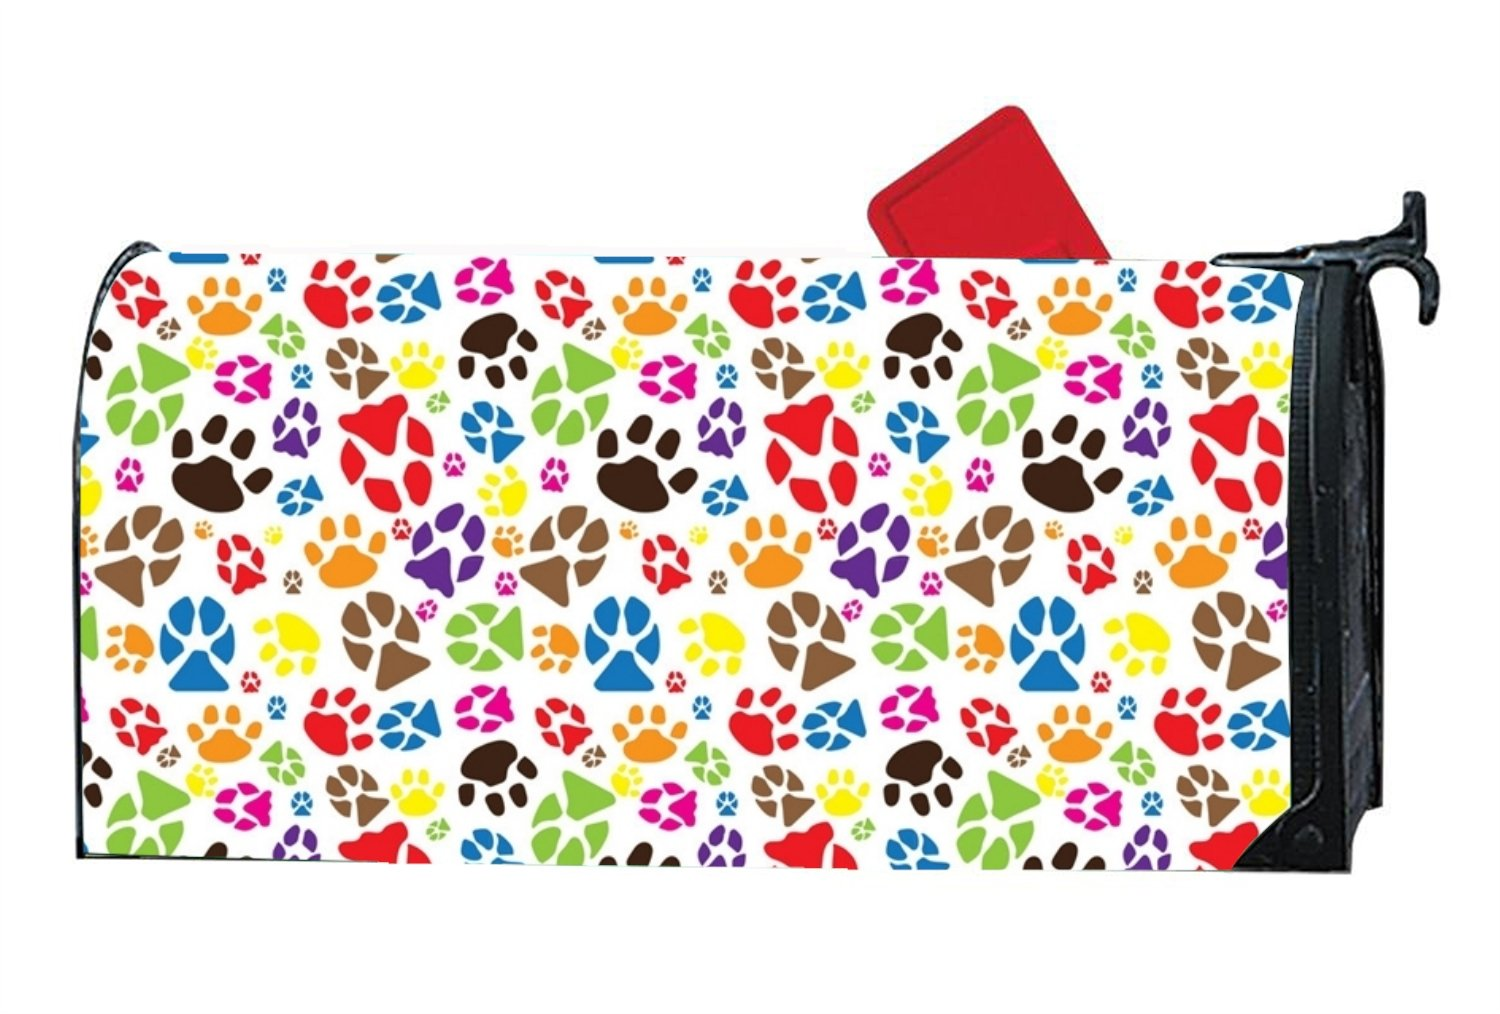 XW-FGF A Dog With An Animal's Paw Magnetic mailbox cover Home Magnetic